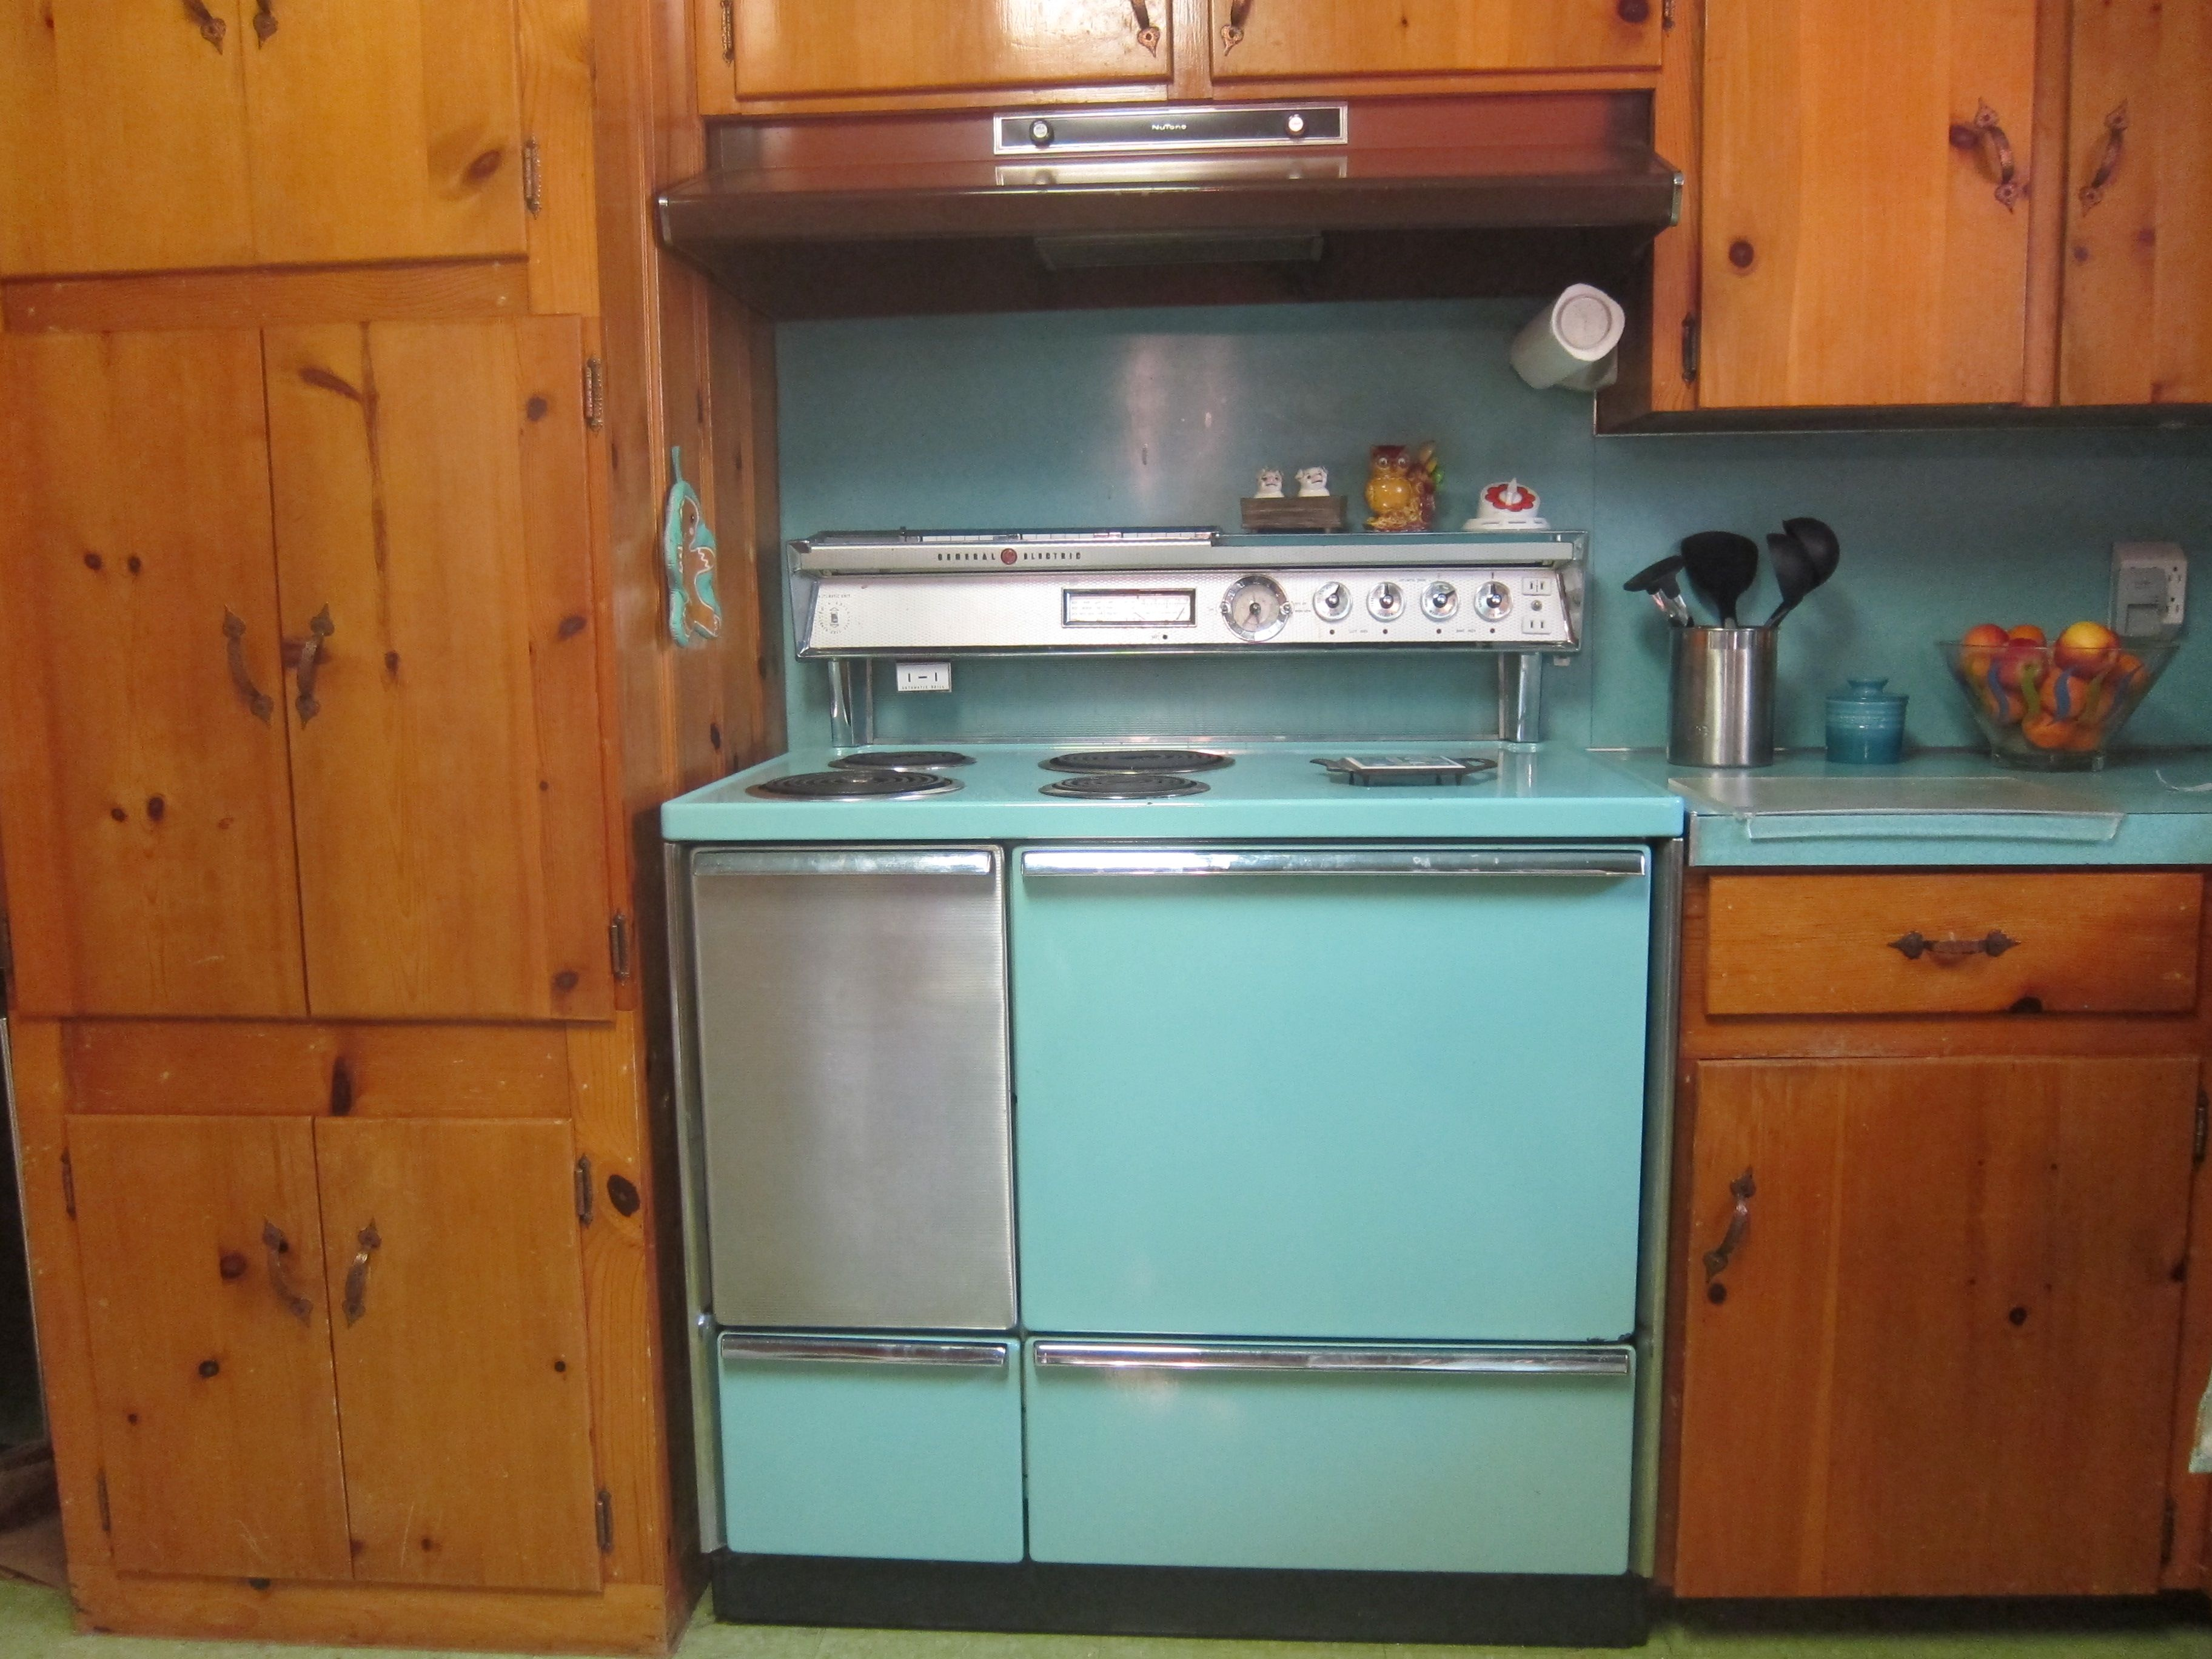 208 pictures of vintage stoves, refrigerators and large appliances ...